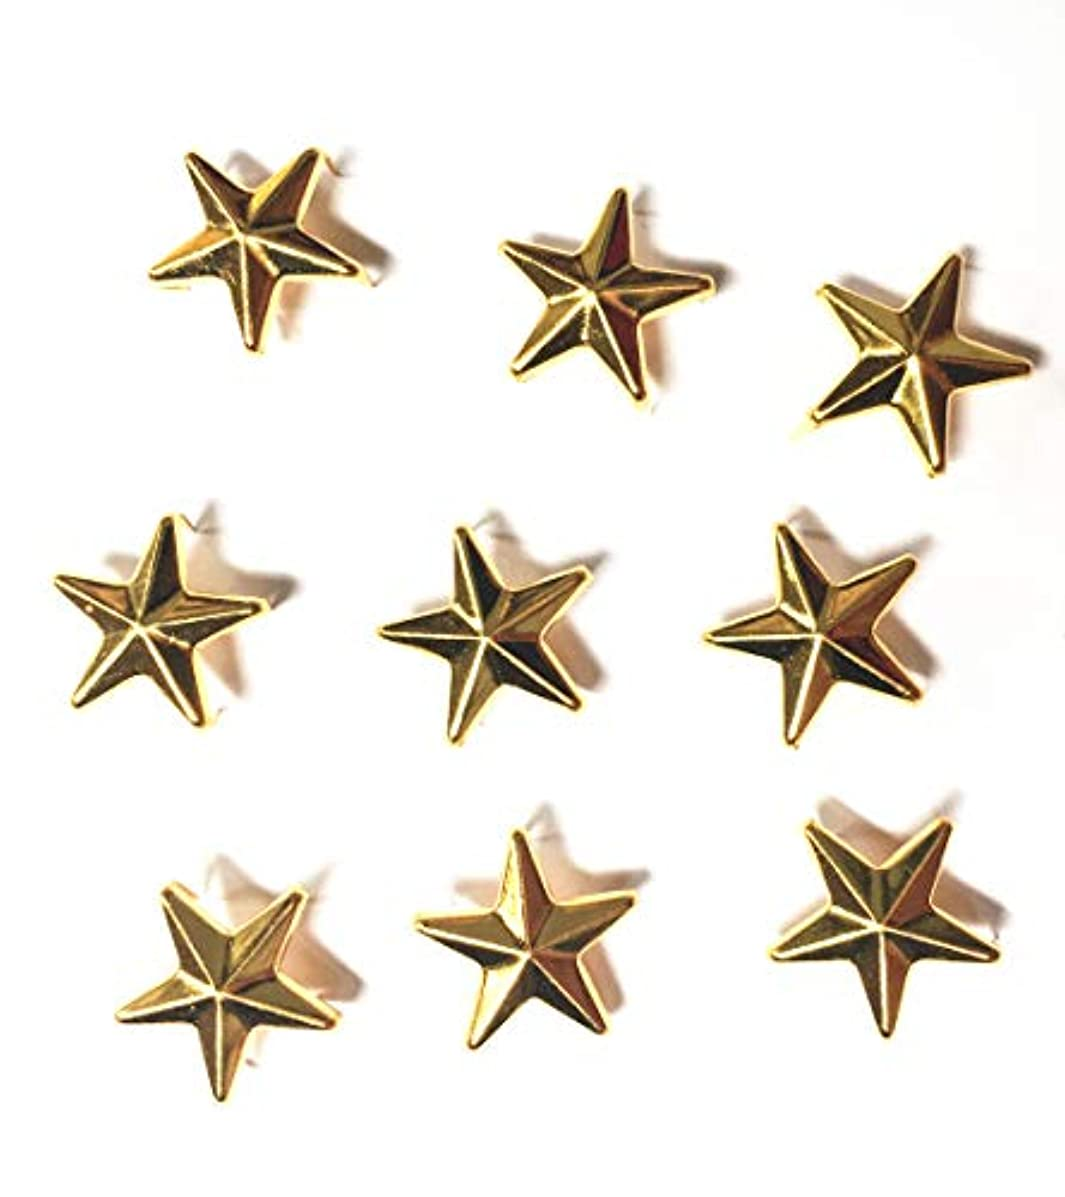 50 Pcs Star Studs Metal Claw Beads Nailhead Punk Rivets with Spikes (Gold, 10 Mm)